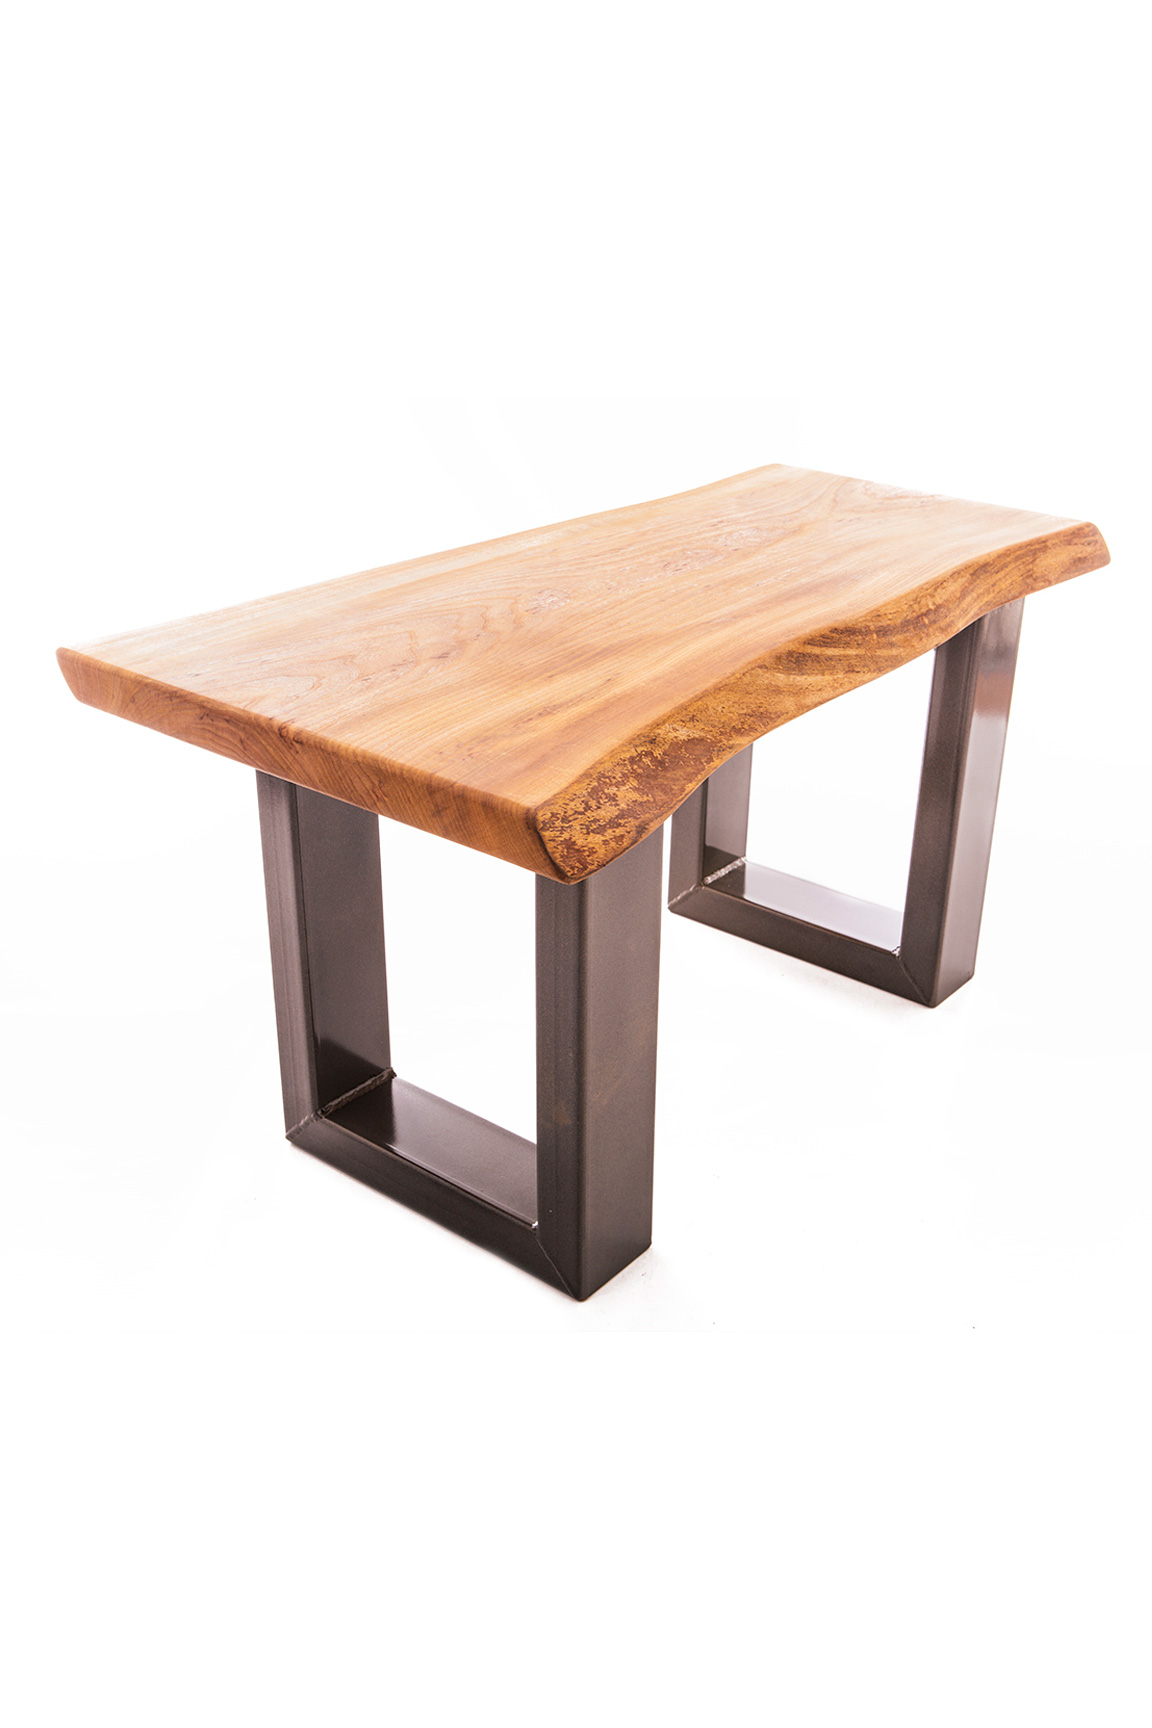 Live Edge Elm Coffee Table on Chunky Box Steel Legs — Paul Frampton